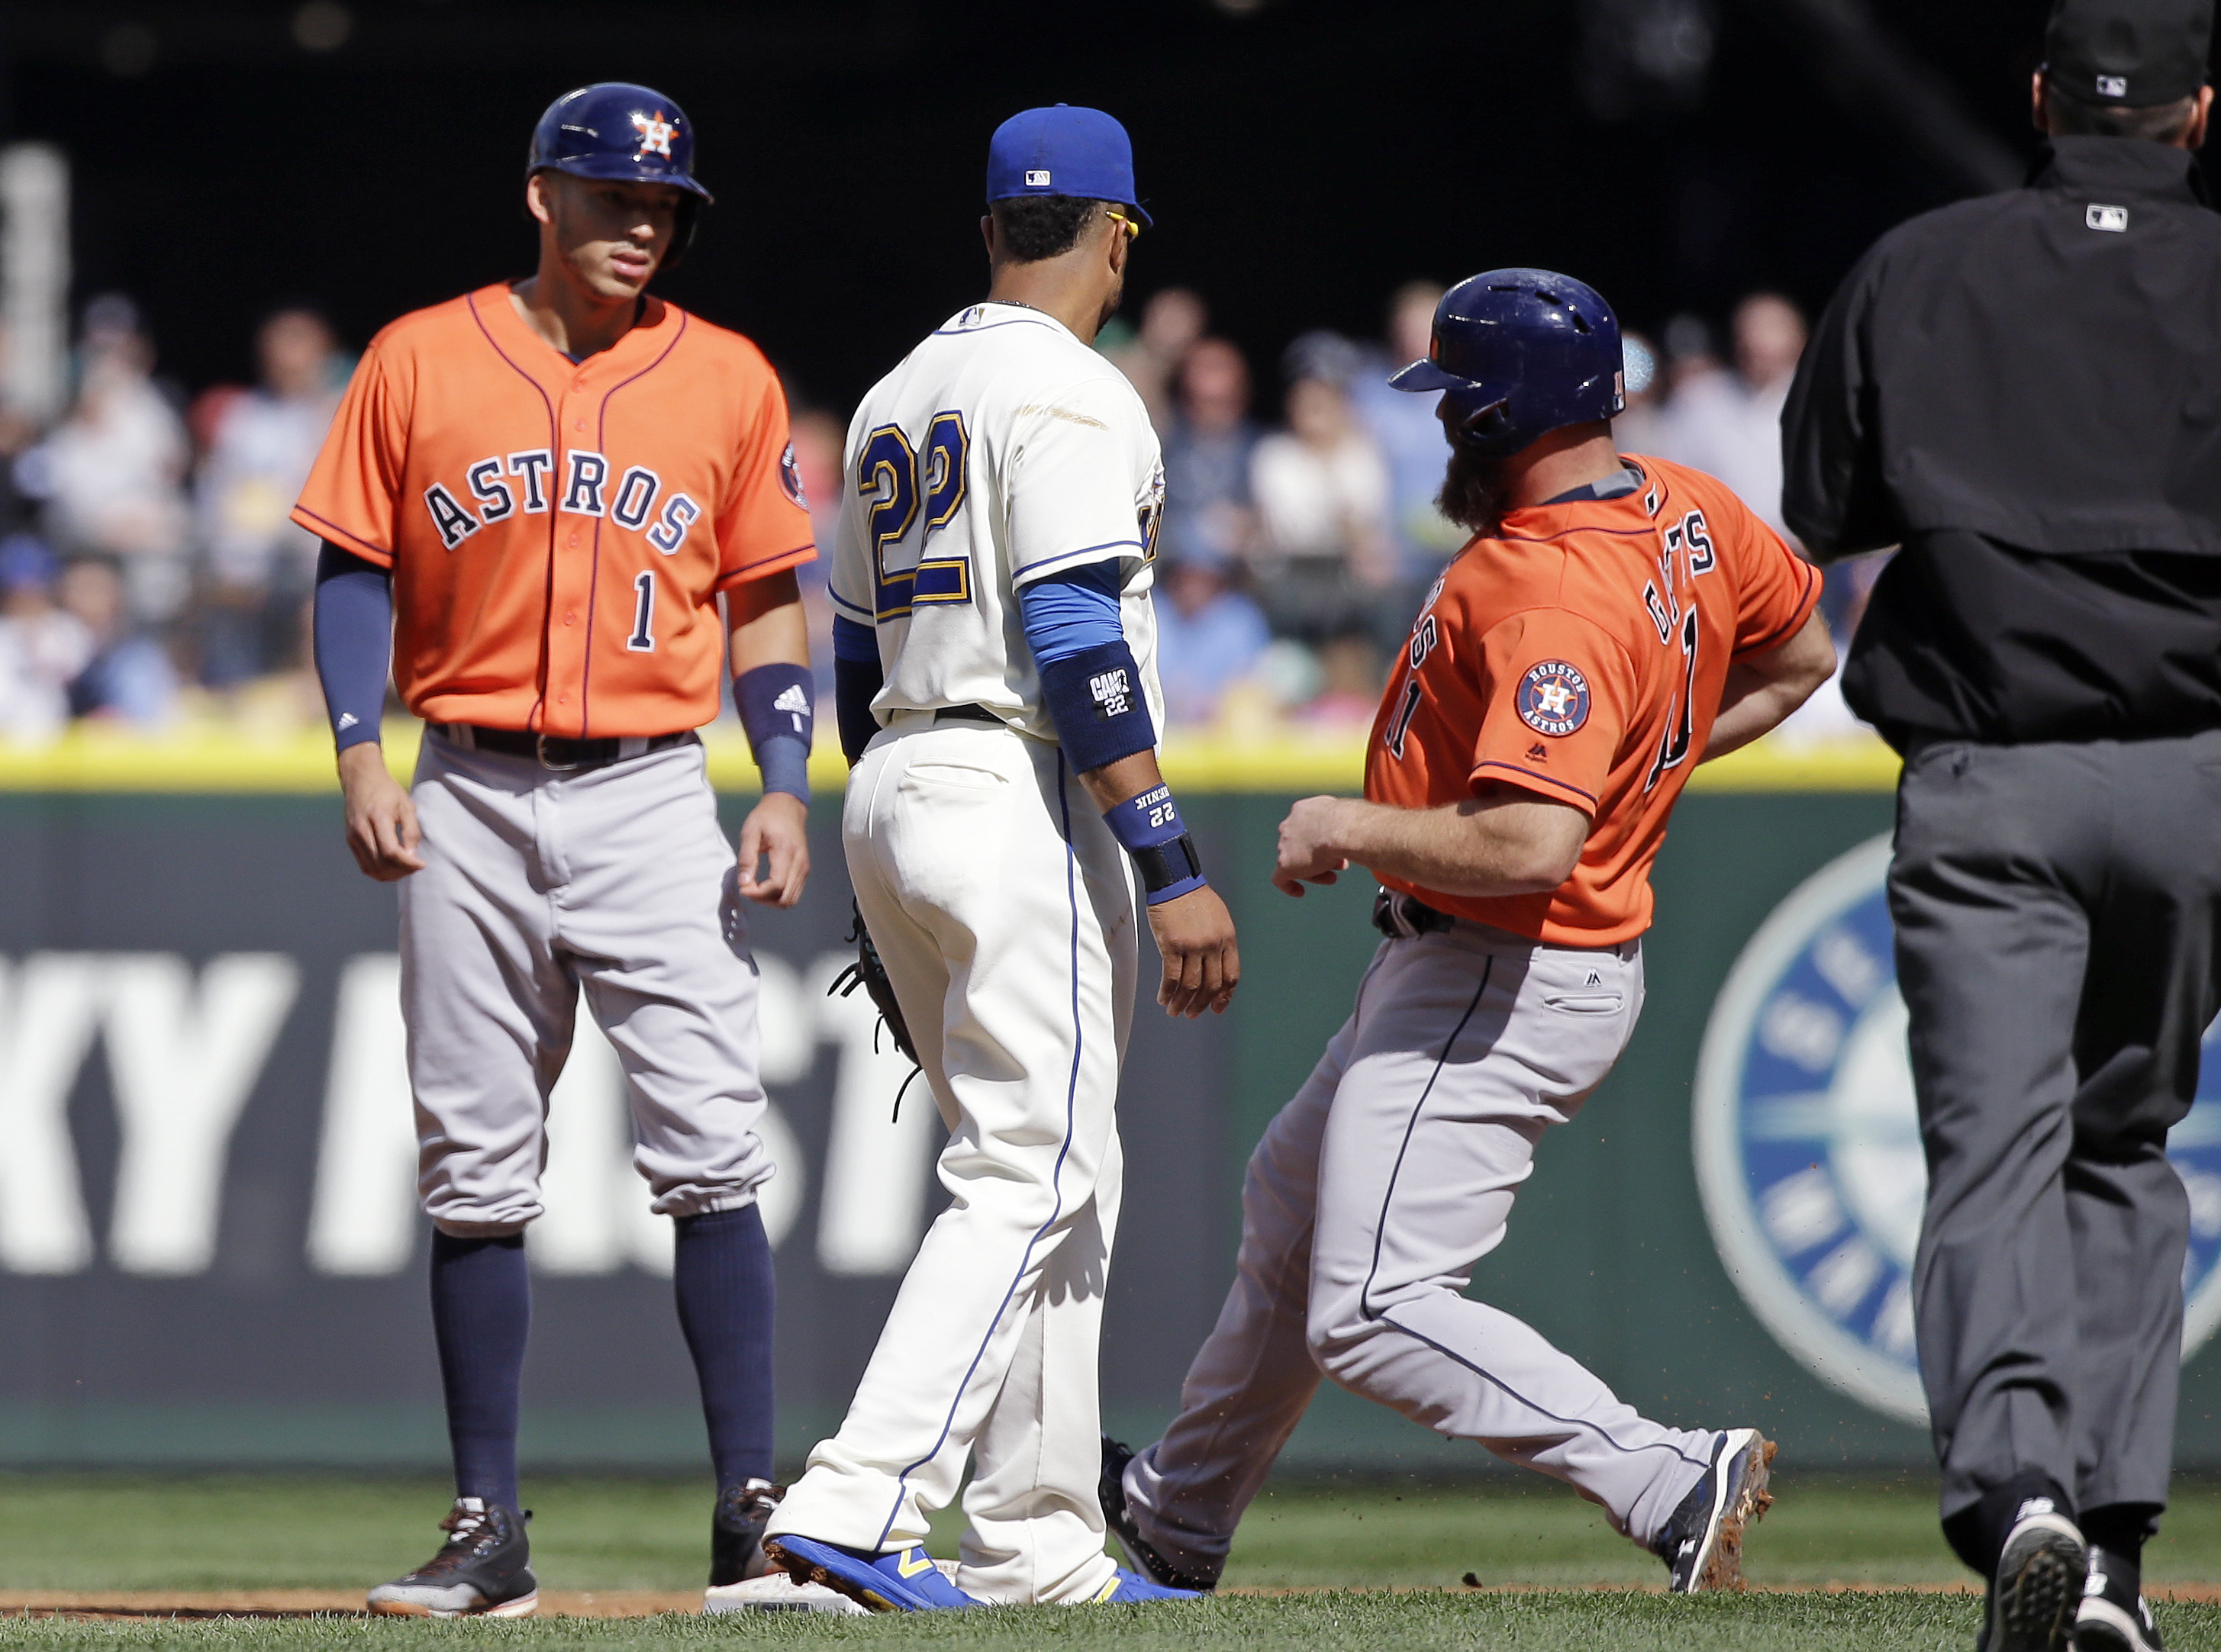 Seattle Mariners second baseman Robinson Cano (22) looks on as Houston Astros' Evan Gattis, right, arrives at second base, already occupied by Carlos Correa, in the second inning of a baseball game Sunday, Sept. 18, 2016, in Seattle. Gattis was tagged out